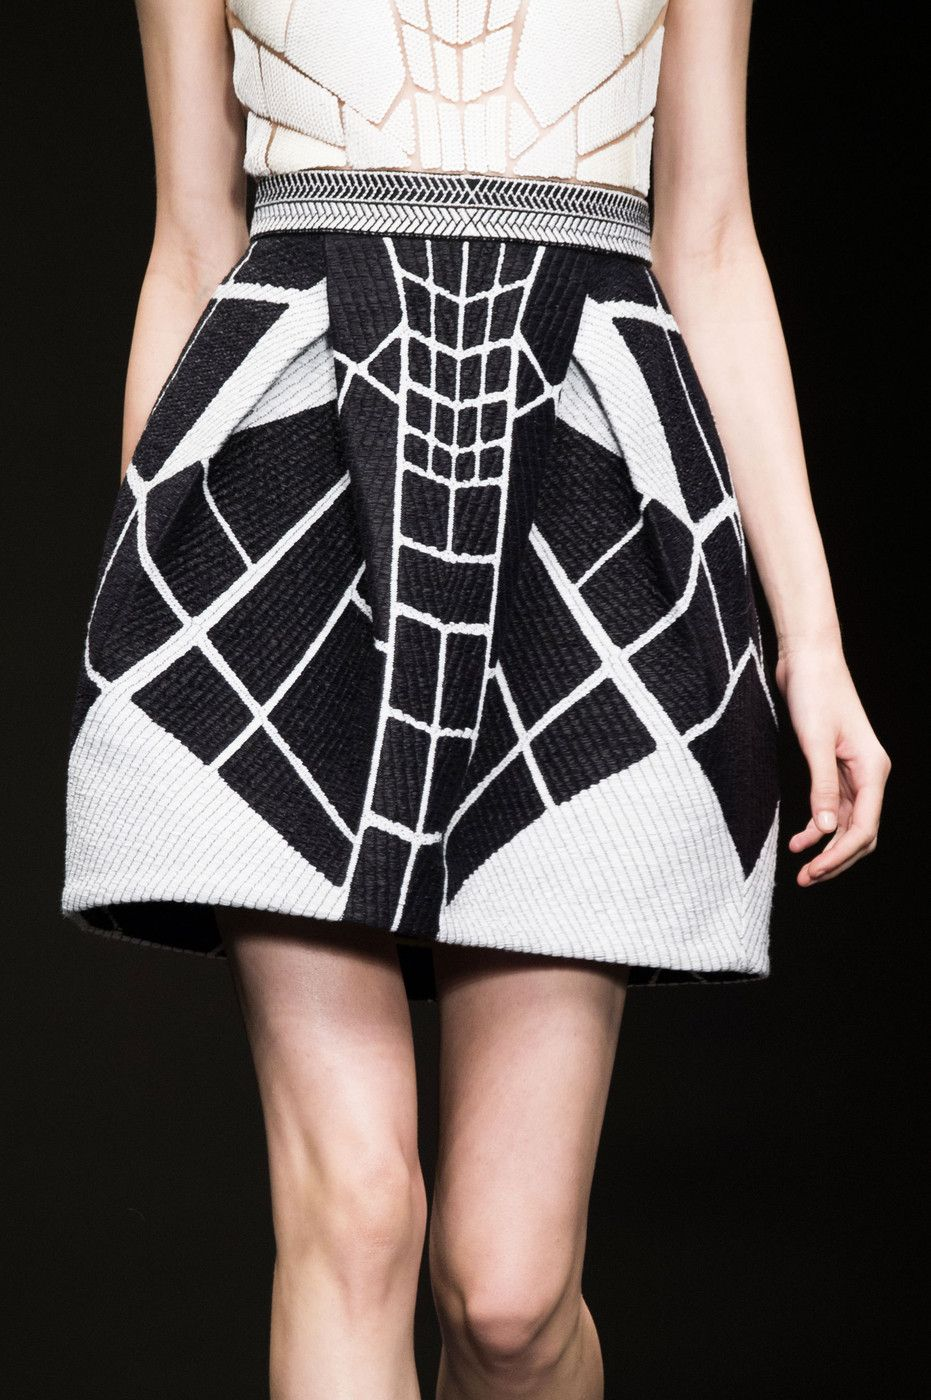 Skirt with fragmented patterns; close up fashion details // Byblos Spring 2015